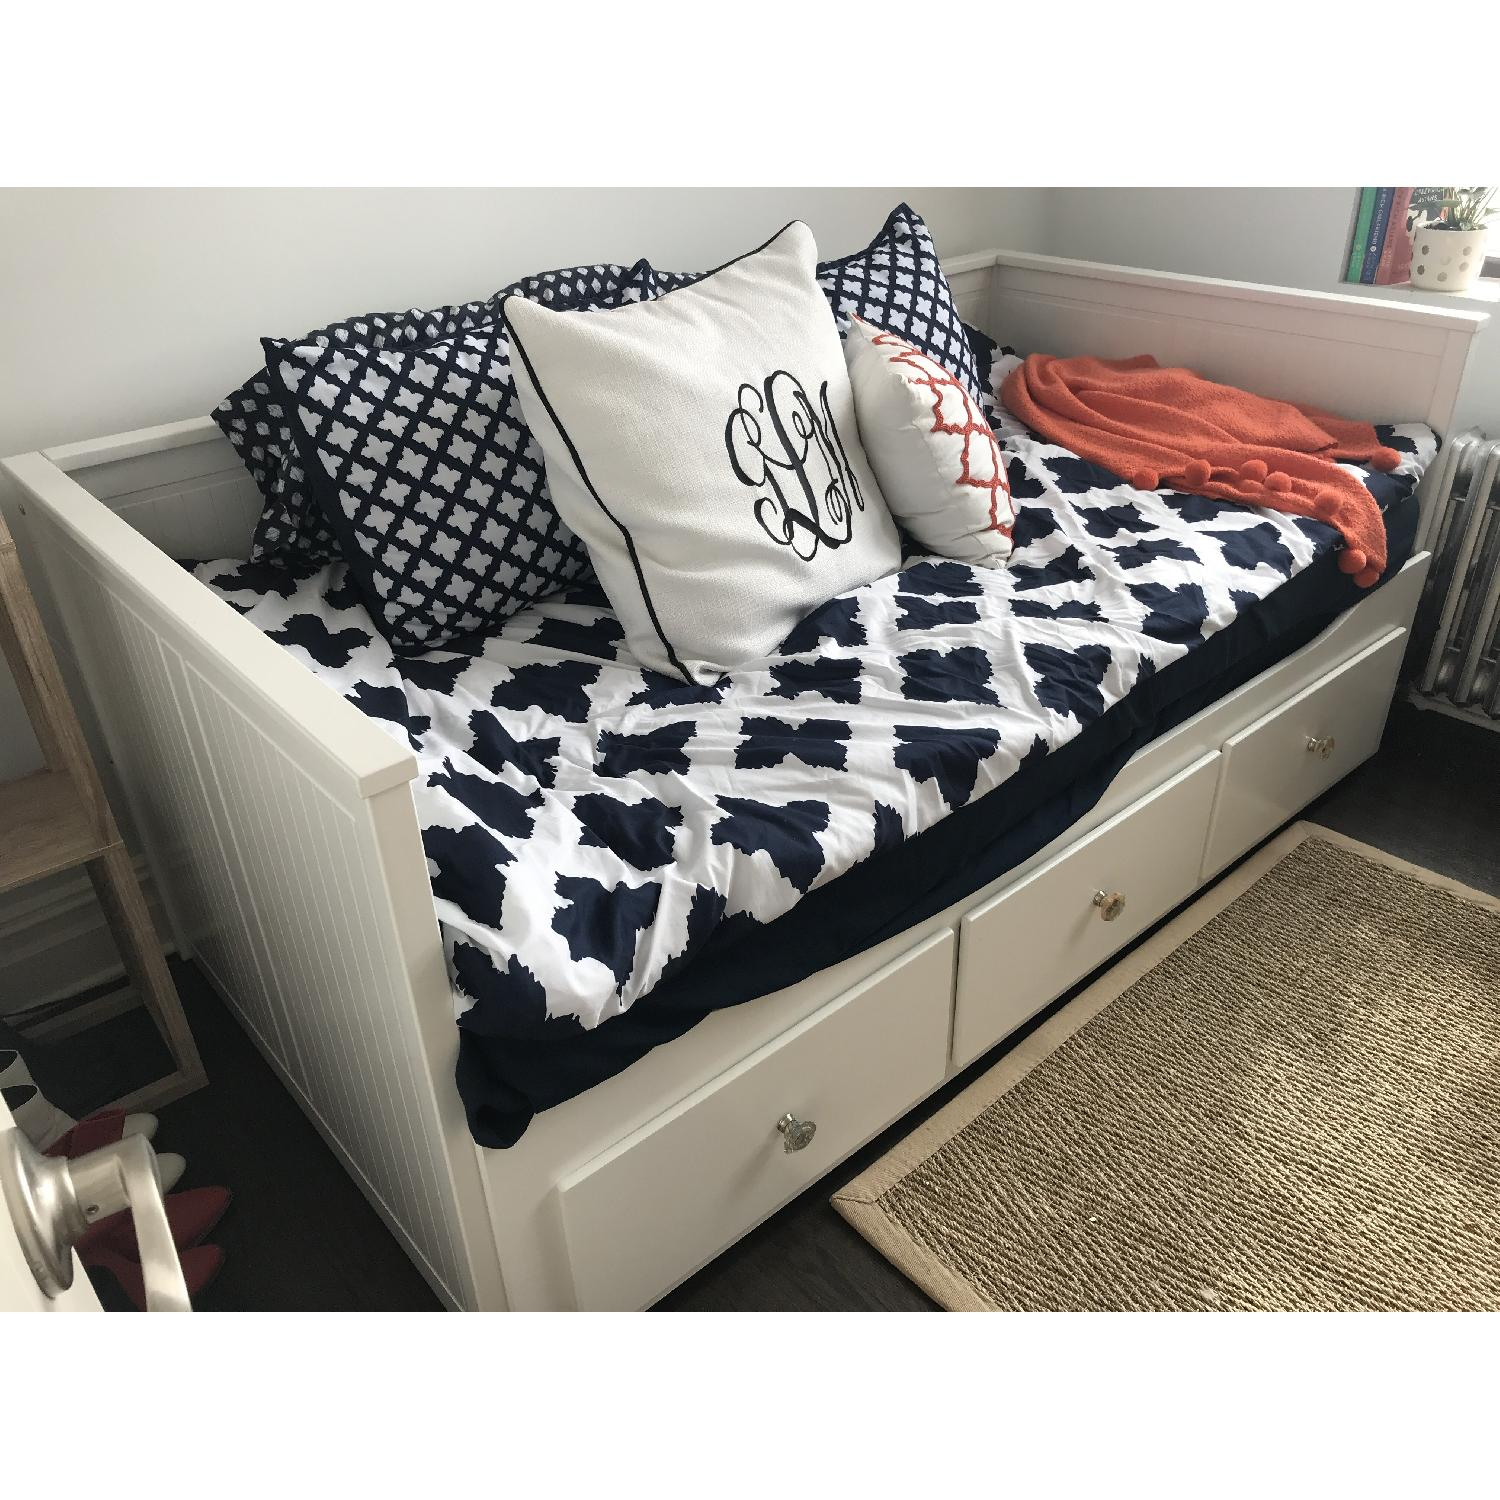 Ikea Hemnes White Daybed w/ 3 Drawers & Trundle-1